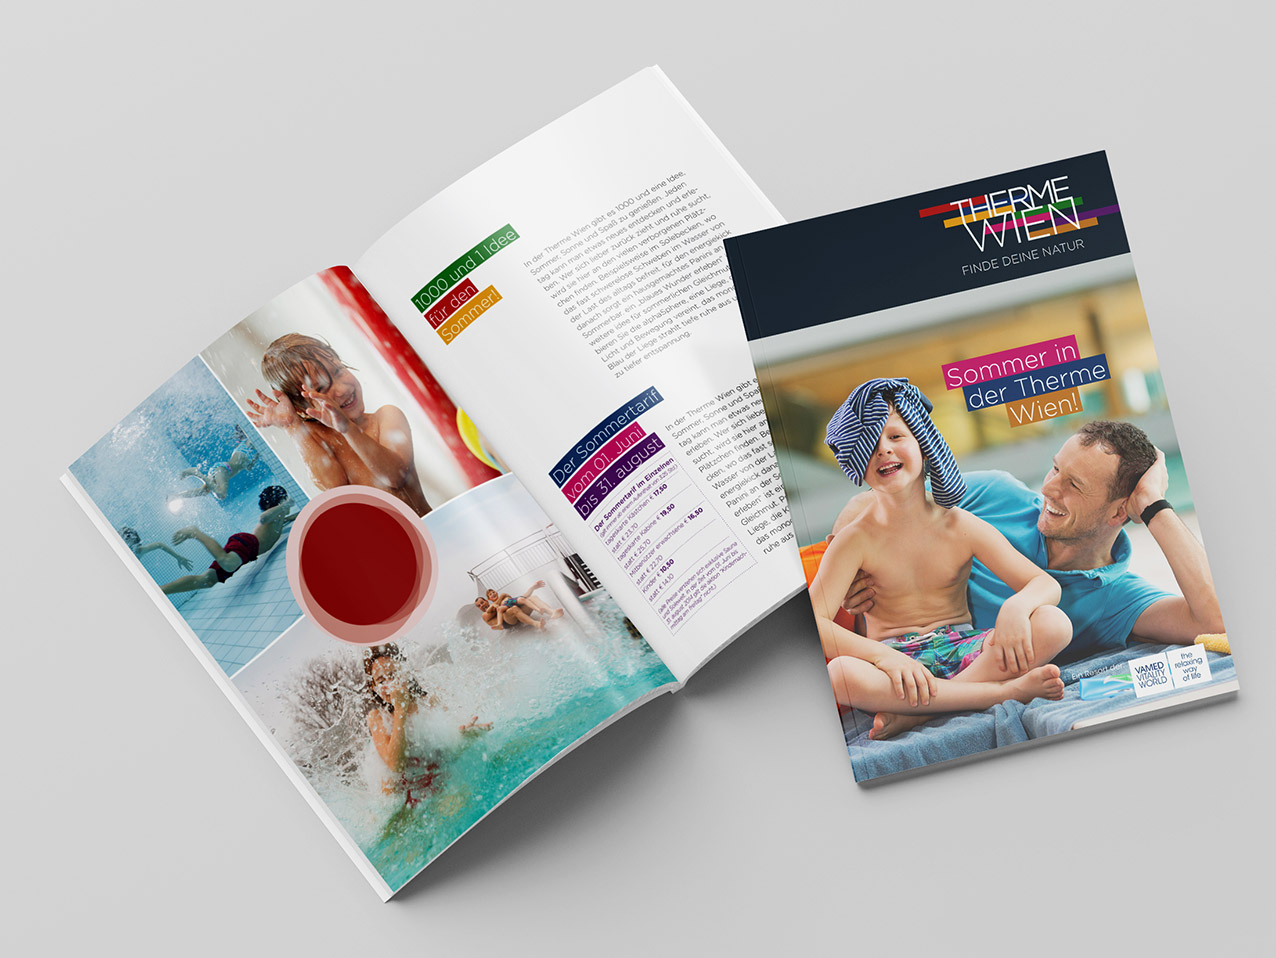 http://cremefresh.at/wp-content/uploads/2019/11/ThermeWien_Sommer_01.jpg